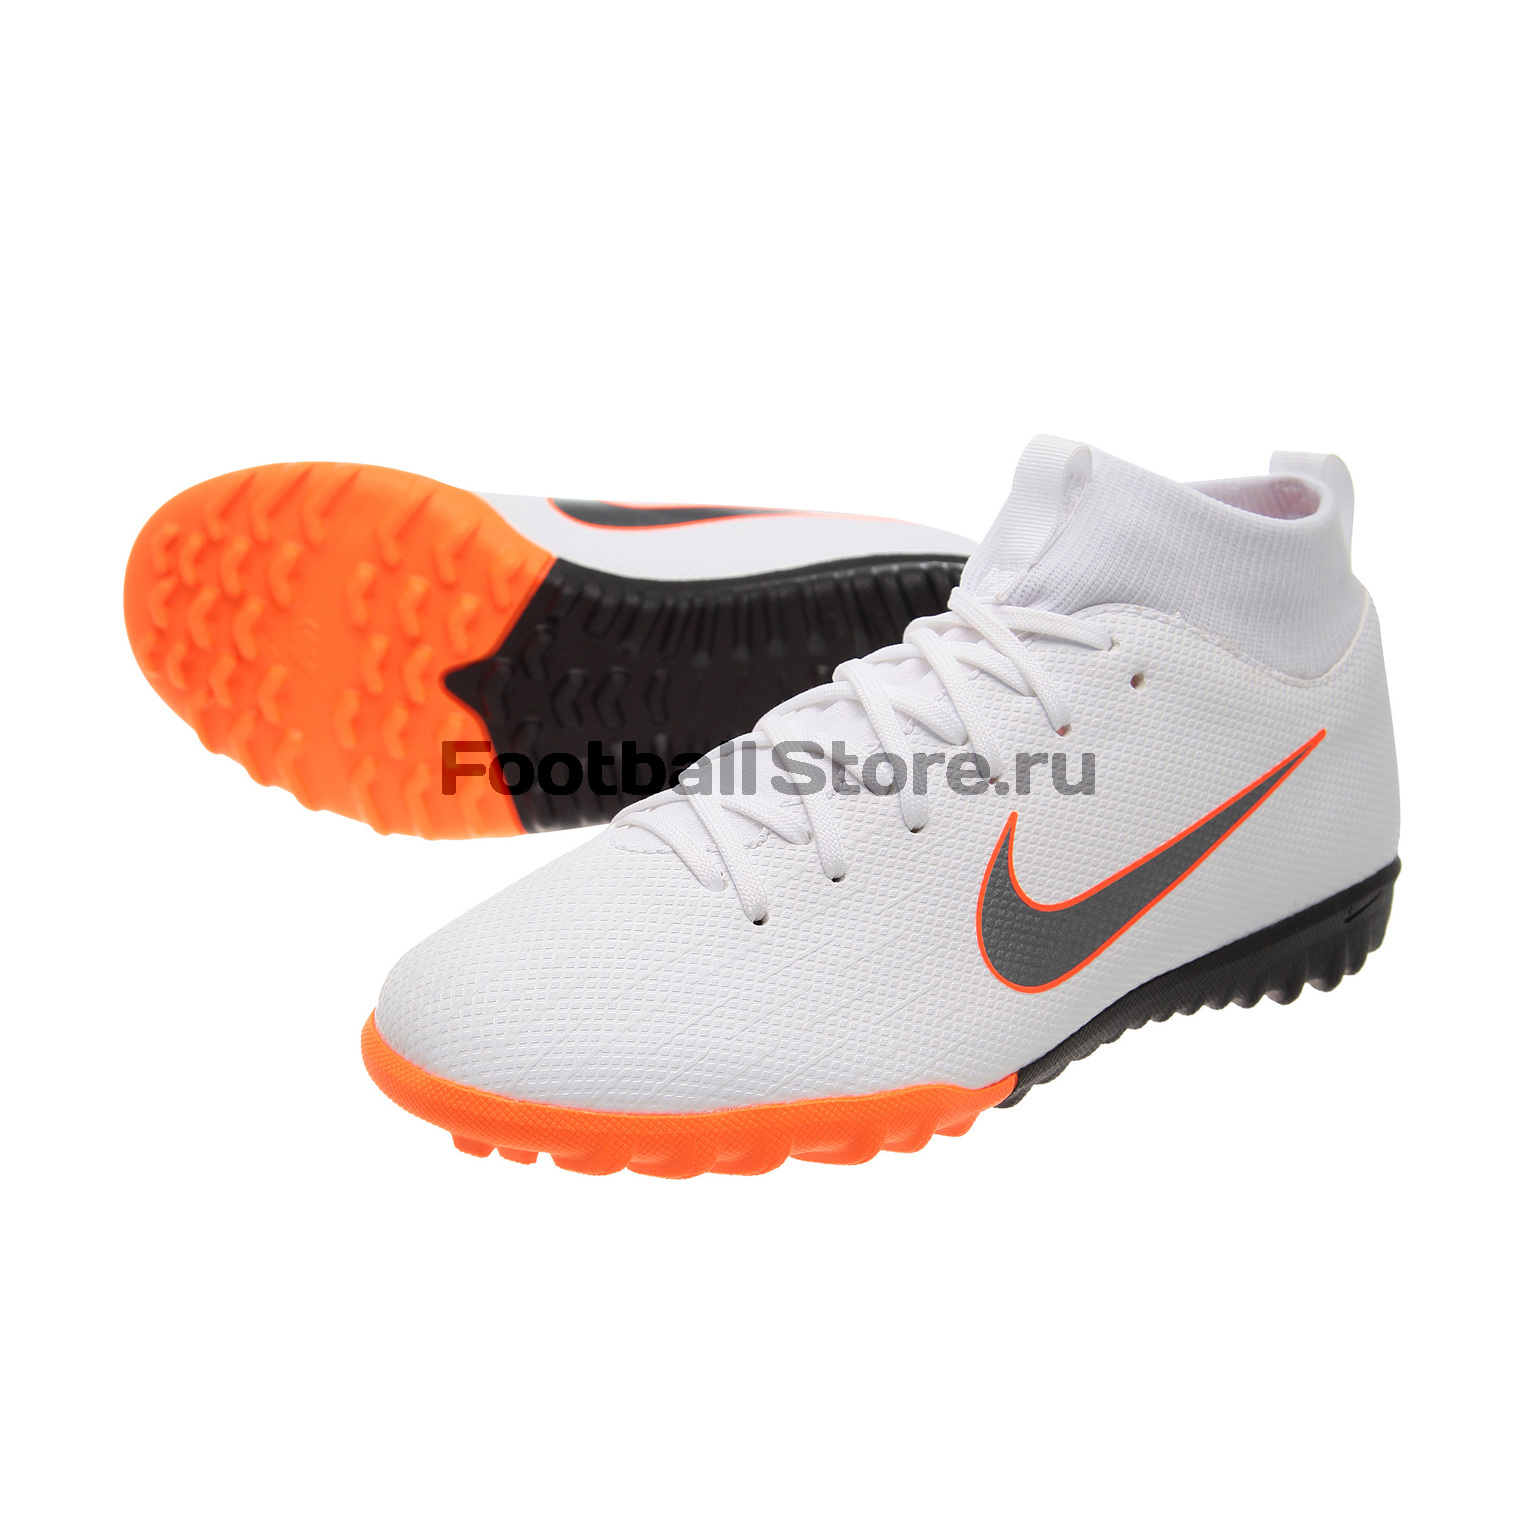 Шиповки детские Nike SuperFly X Academy GS TF AH7344-107 бутсы nike шиповки nike jr tiempox legend vi tf 819191 018